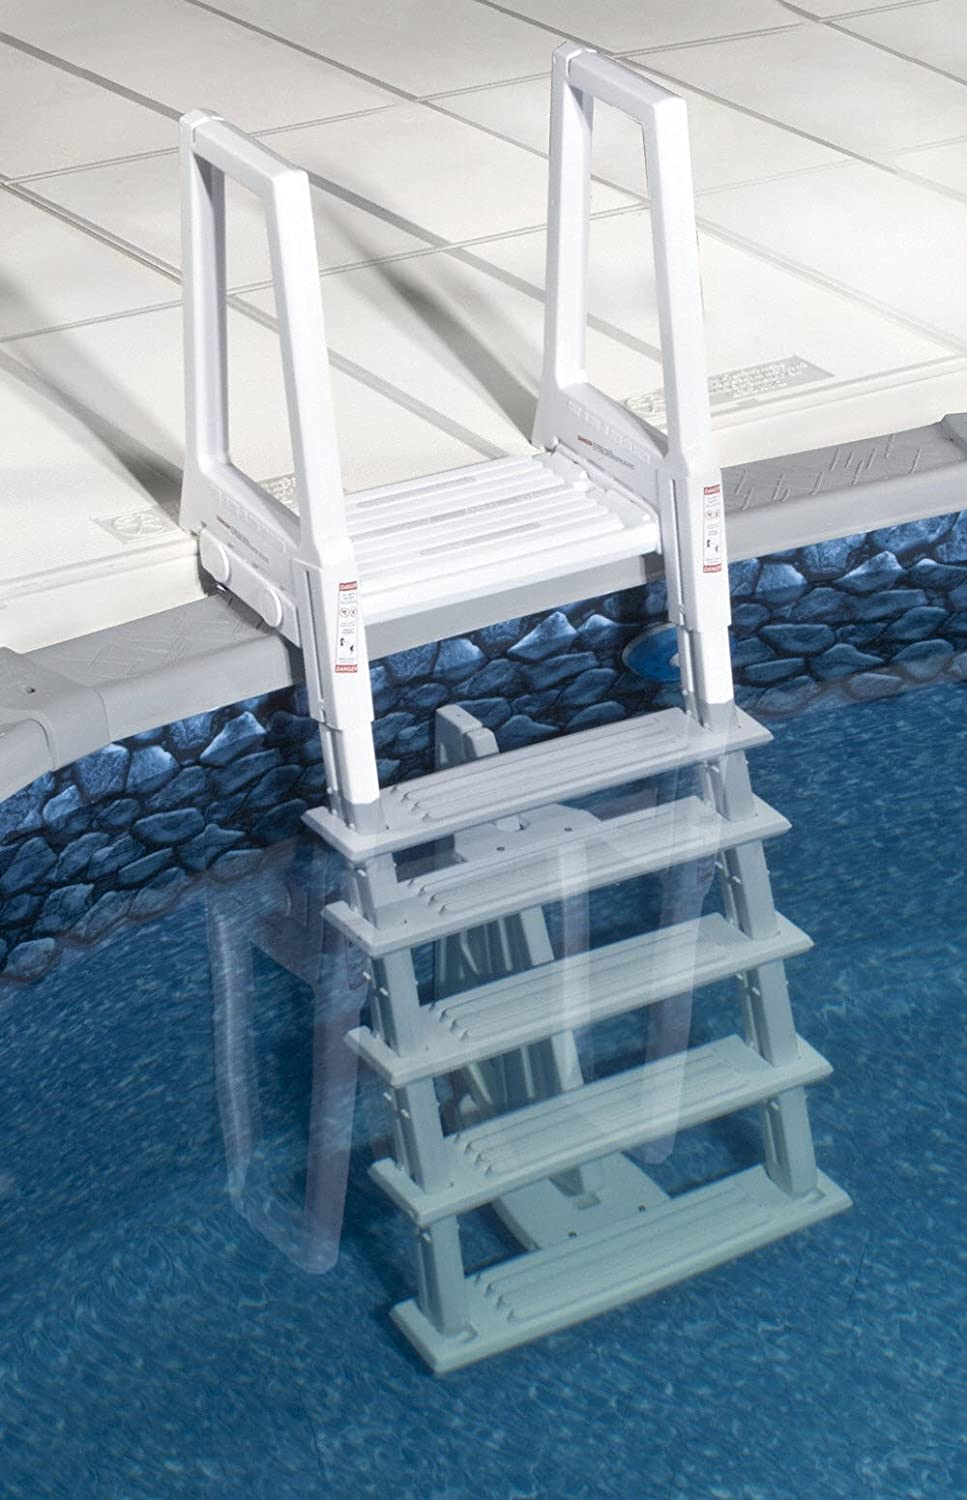 amazoncom 46 56 inch confer above ground swimming pool in pool ladder deluxe pool ladder garden outdoor